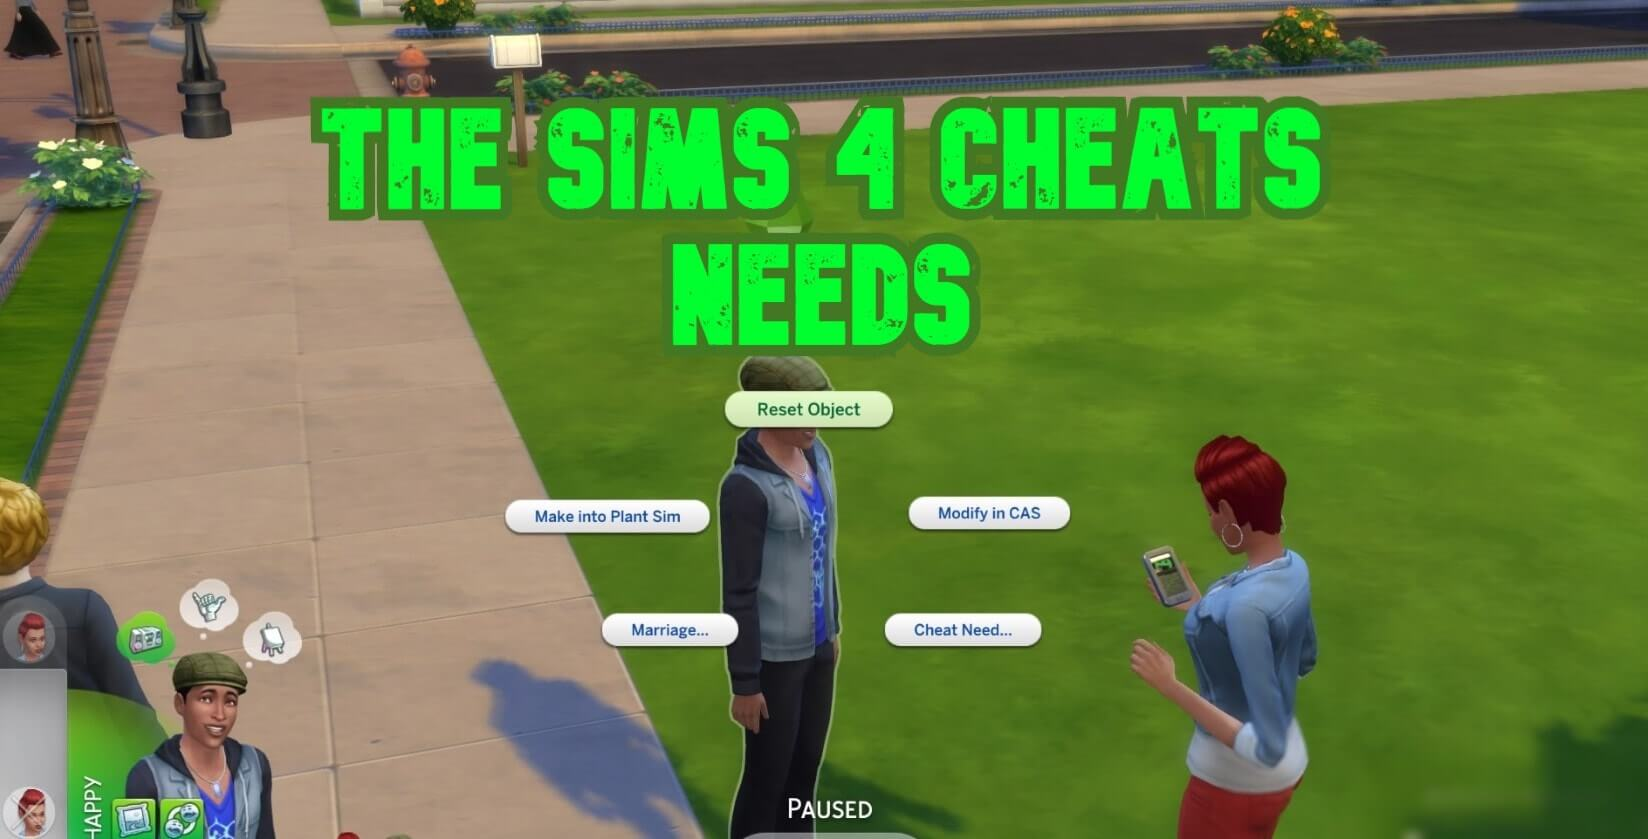 The Sims 4 Needs Cheats and Sims 4 Max Fill Need Cheats